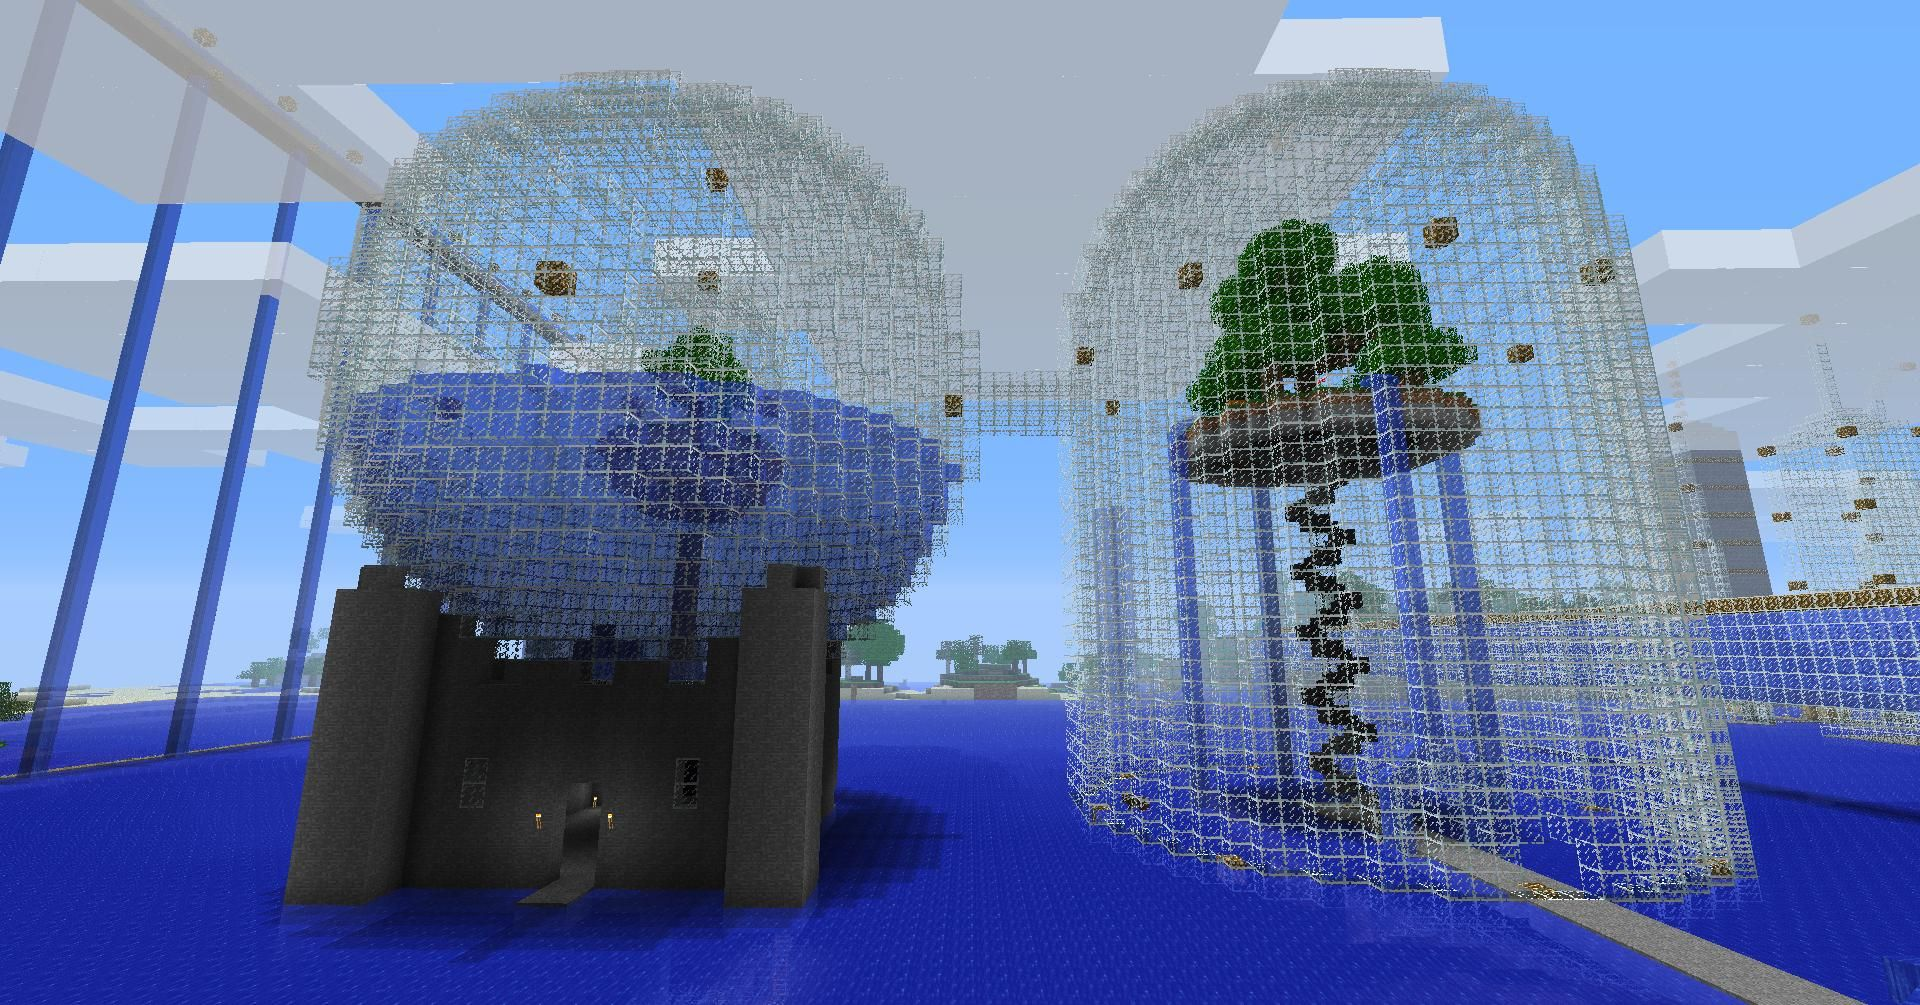 Pin by Calvin Green on Minecraft build ideas | Amazing ...